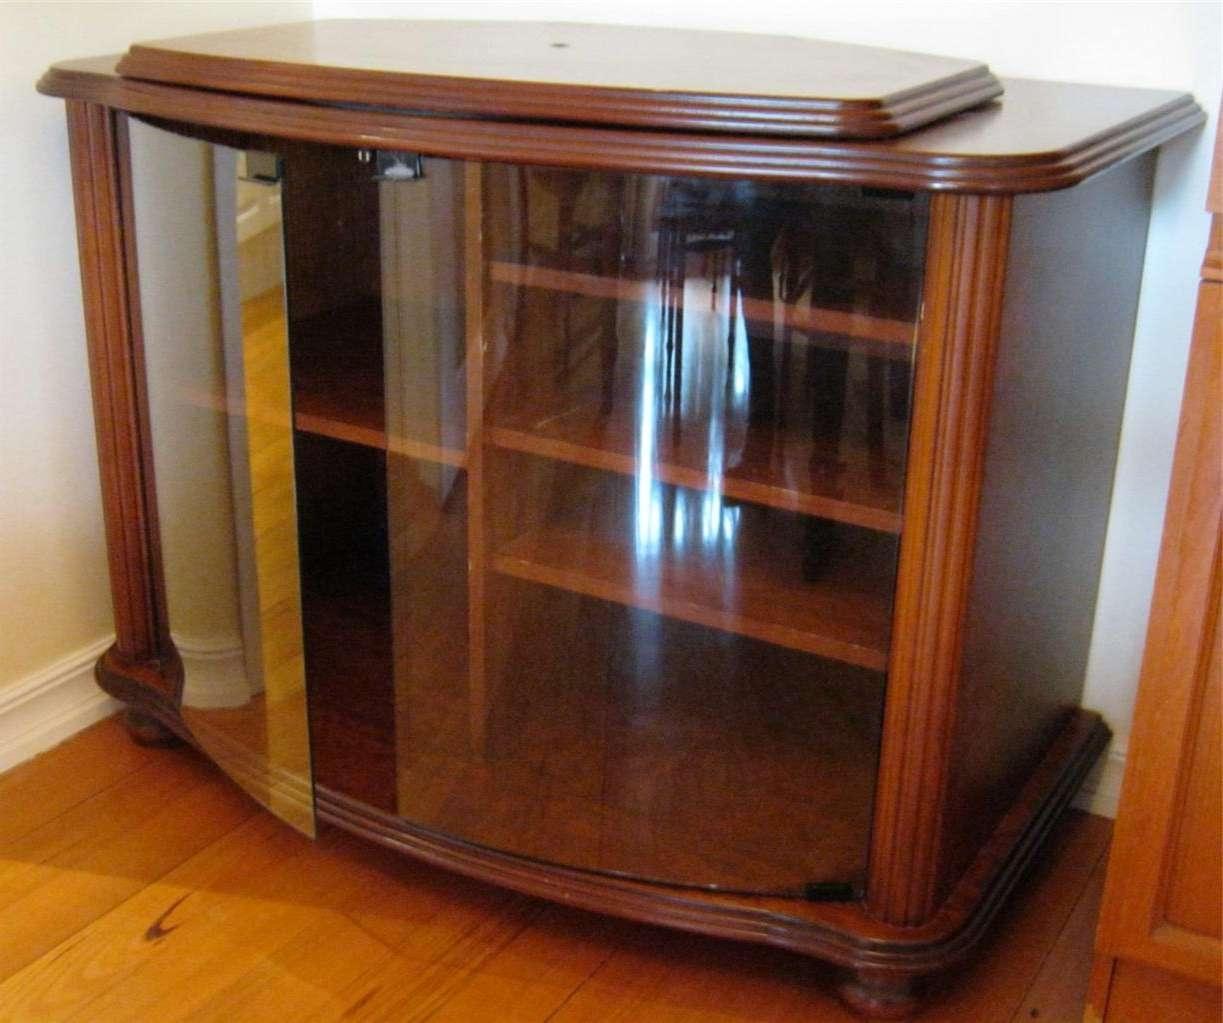 Corner Tv Stand Cabinet With Frameless Glass Doors – Decofurnish With Tv Cabinets With Glass Doors (View 4 of 20)